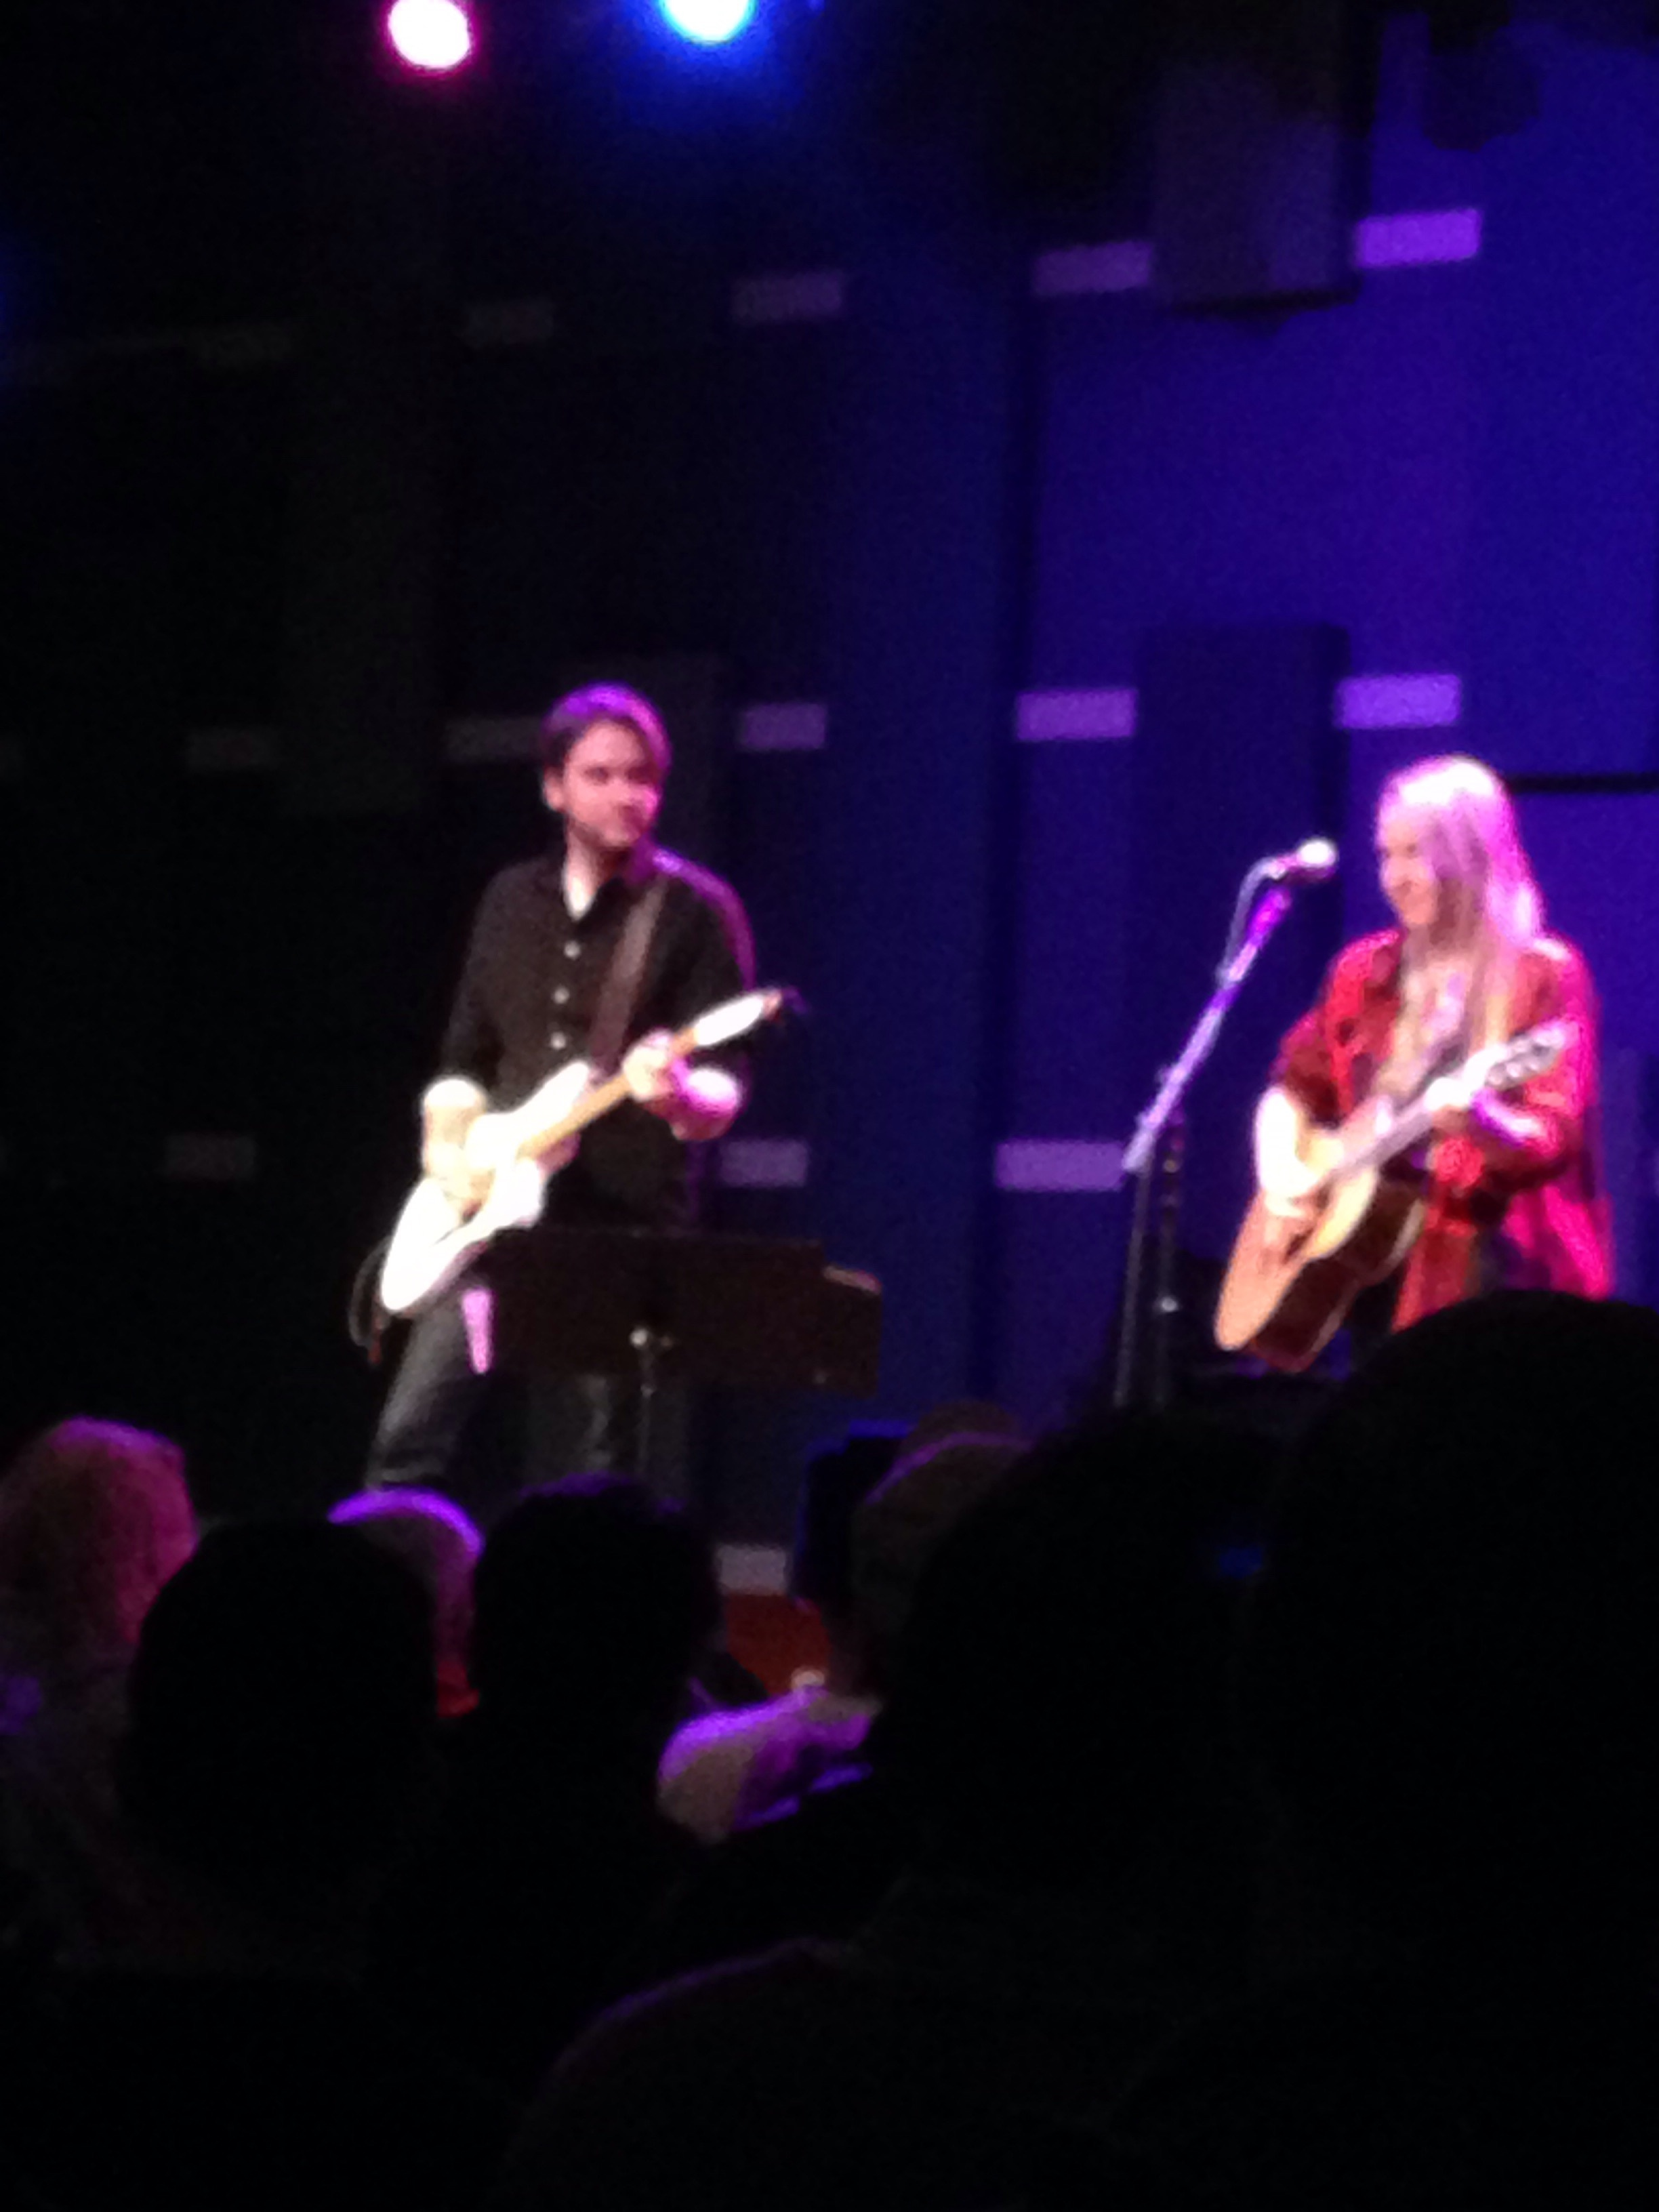 Lissie on acoustic and her electric accompanist.  He was very smooth and subtle under her.  Her vocals were flawless.